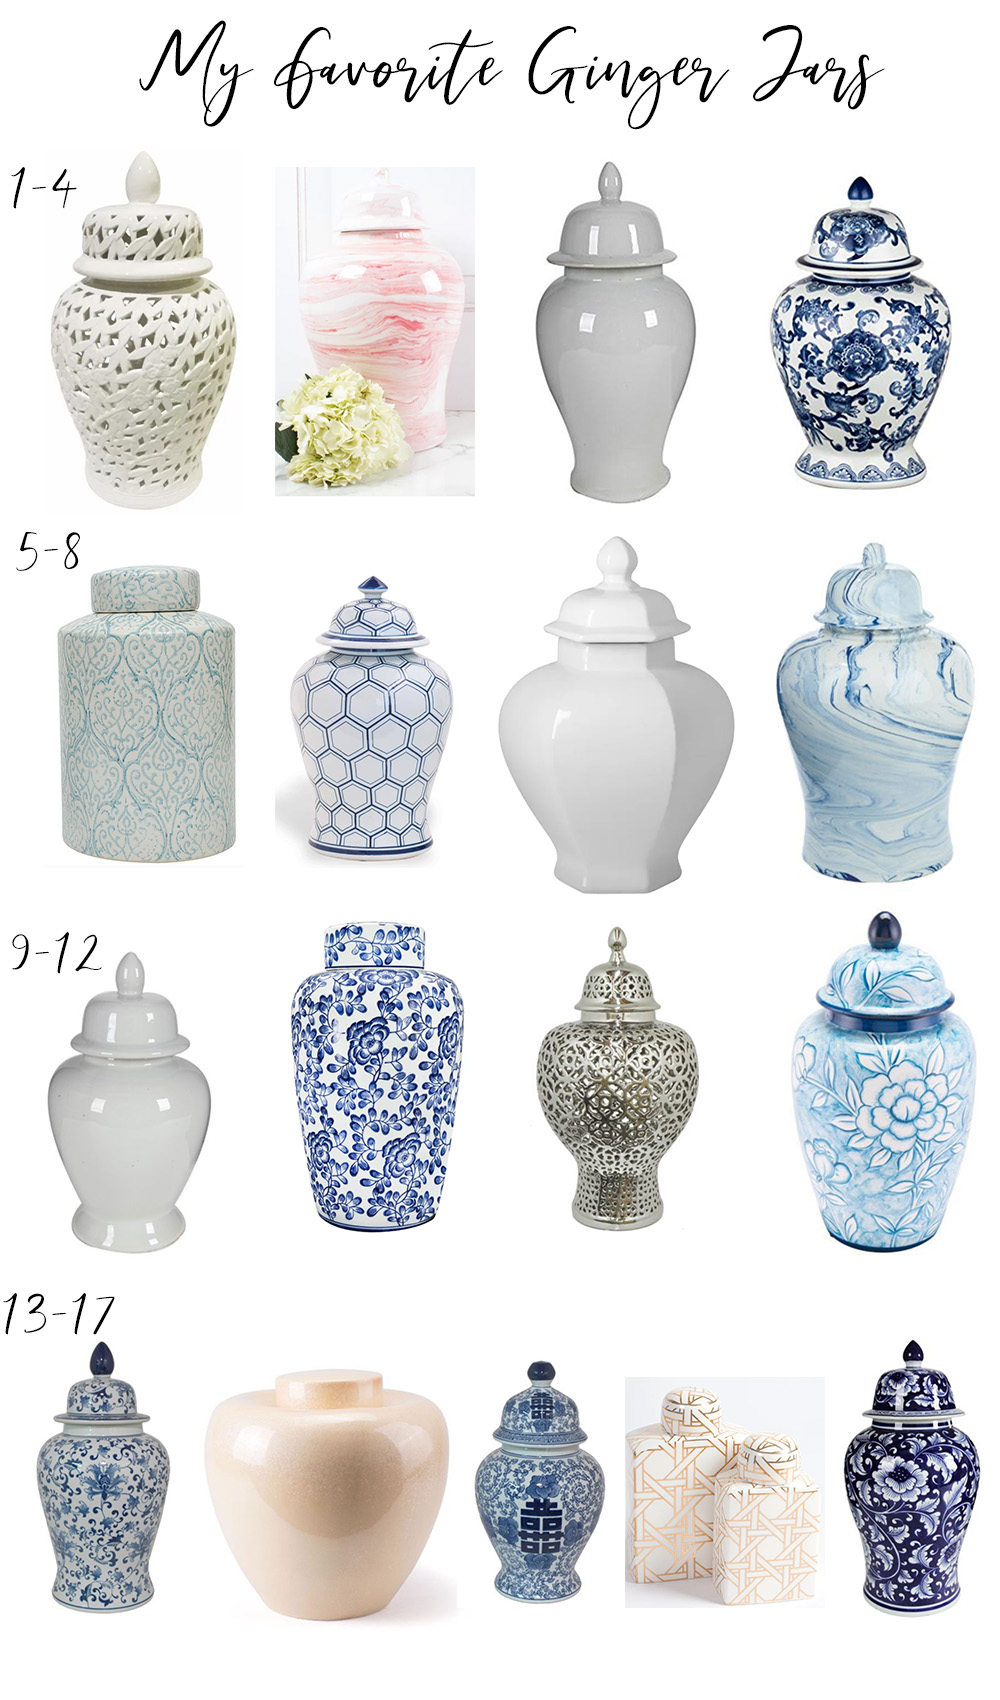 Best of Ginger Jars | I rounded up the CUTEST and top ginger jars/temple jars/lanterns to snag for your home decor this year at all price points.